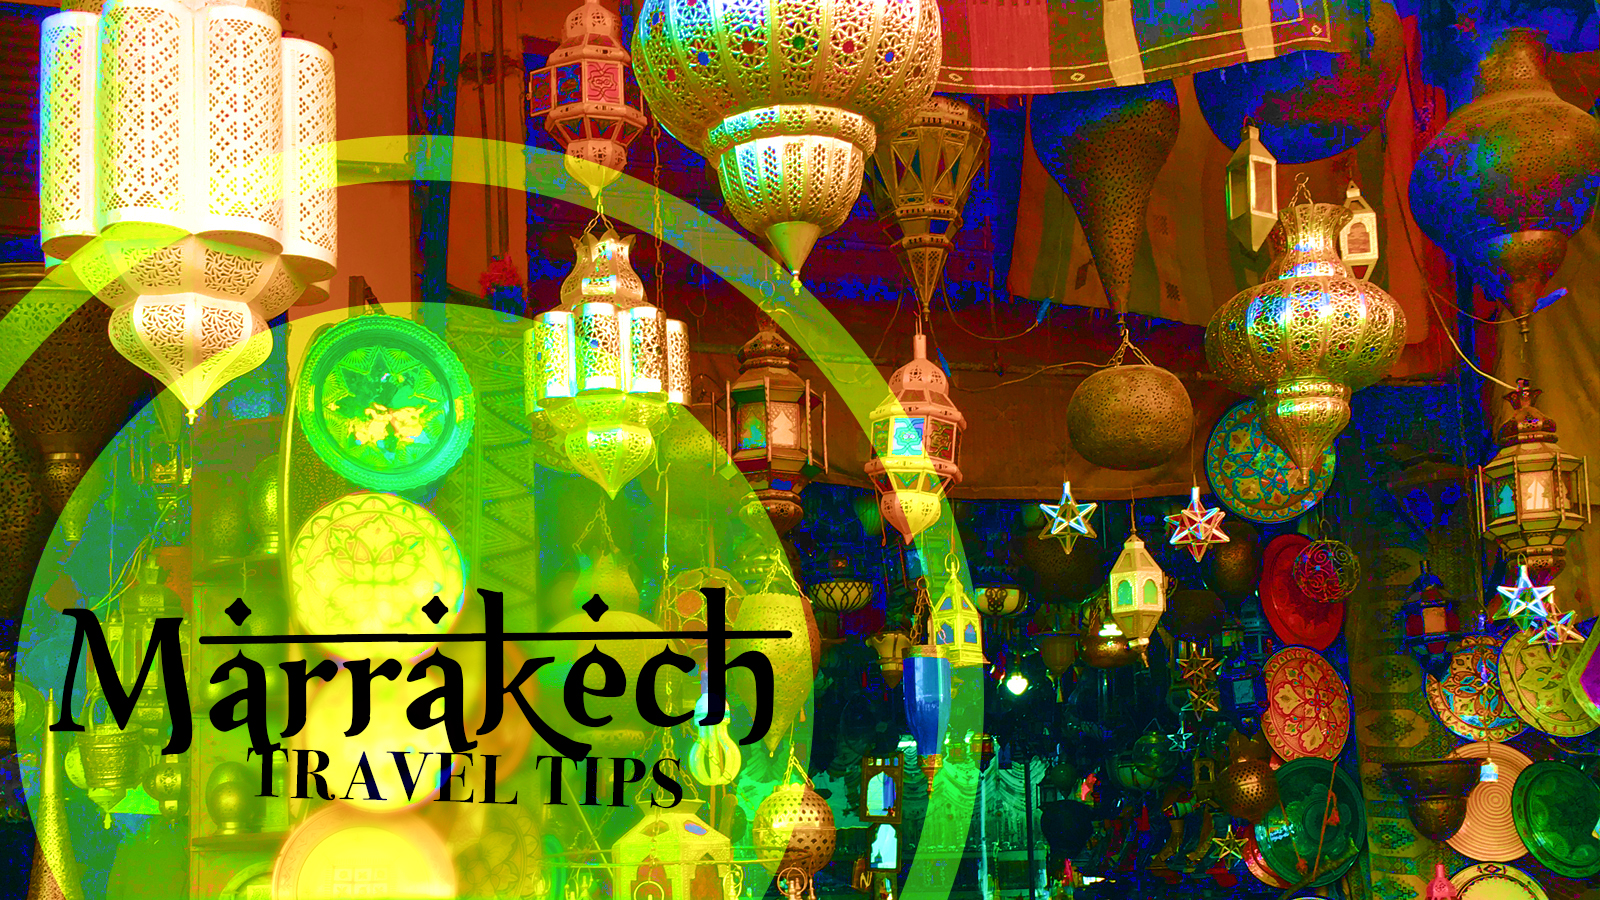 Marrakech Travel Tips: What to expect on your trip to Morocco